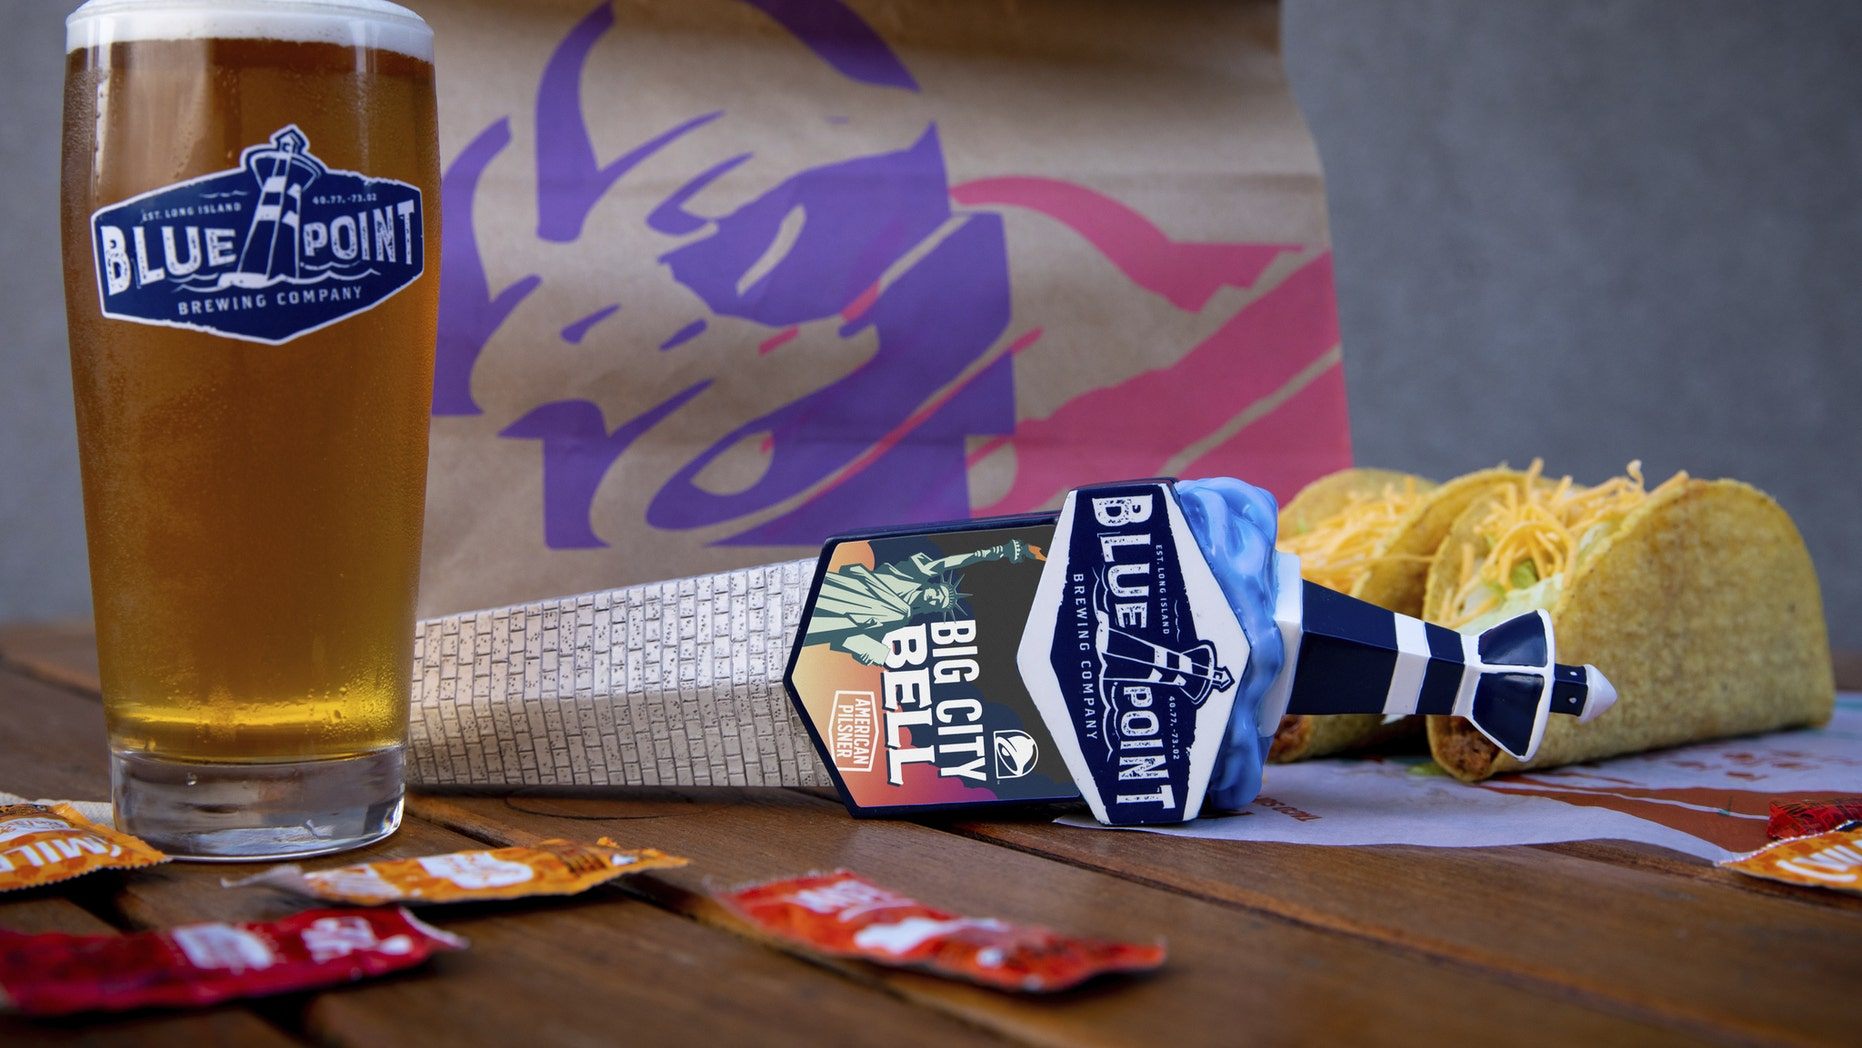 In partnership with Blue Point Brewing Company, three Taco Bell Cantina restaurants in Manhattan will soon sell an exclusive beer.